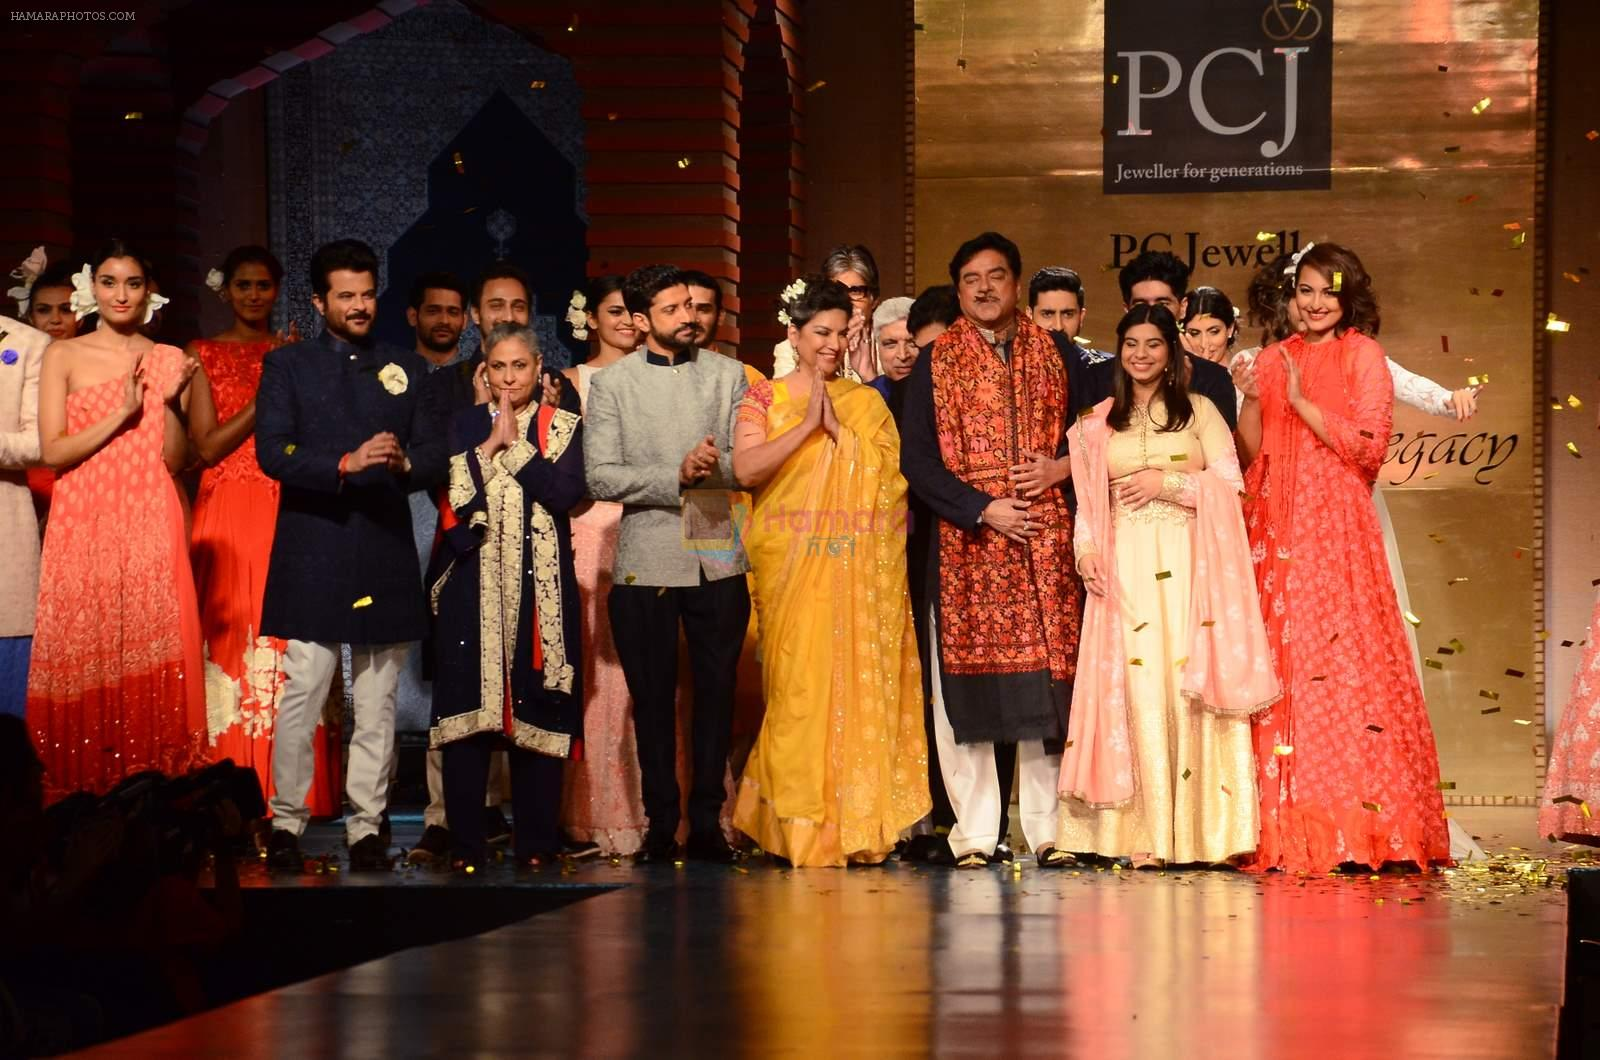 Jaya Bachchan, Anil Kapoor, Farhan Akhtar, Shabana Azmi, Shatrughan Sinha, Sonakshi Sinha at Manish Malhotra presents Mijwan-The Legacy in Grand Hyatt, Mumbai on 4th April 2015